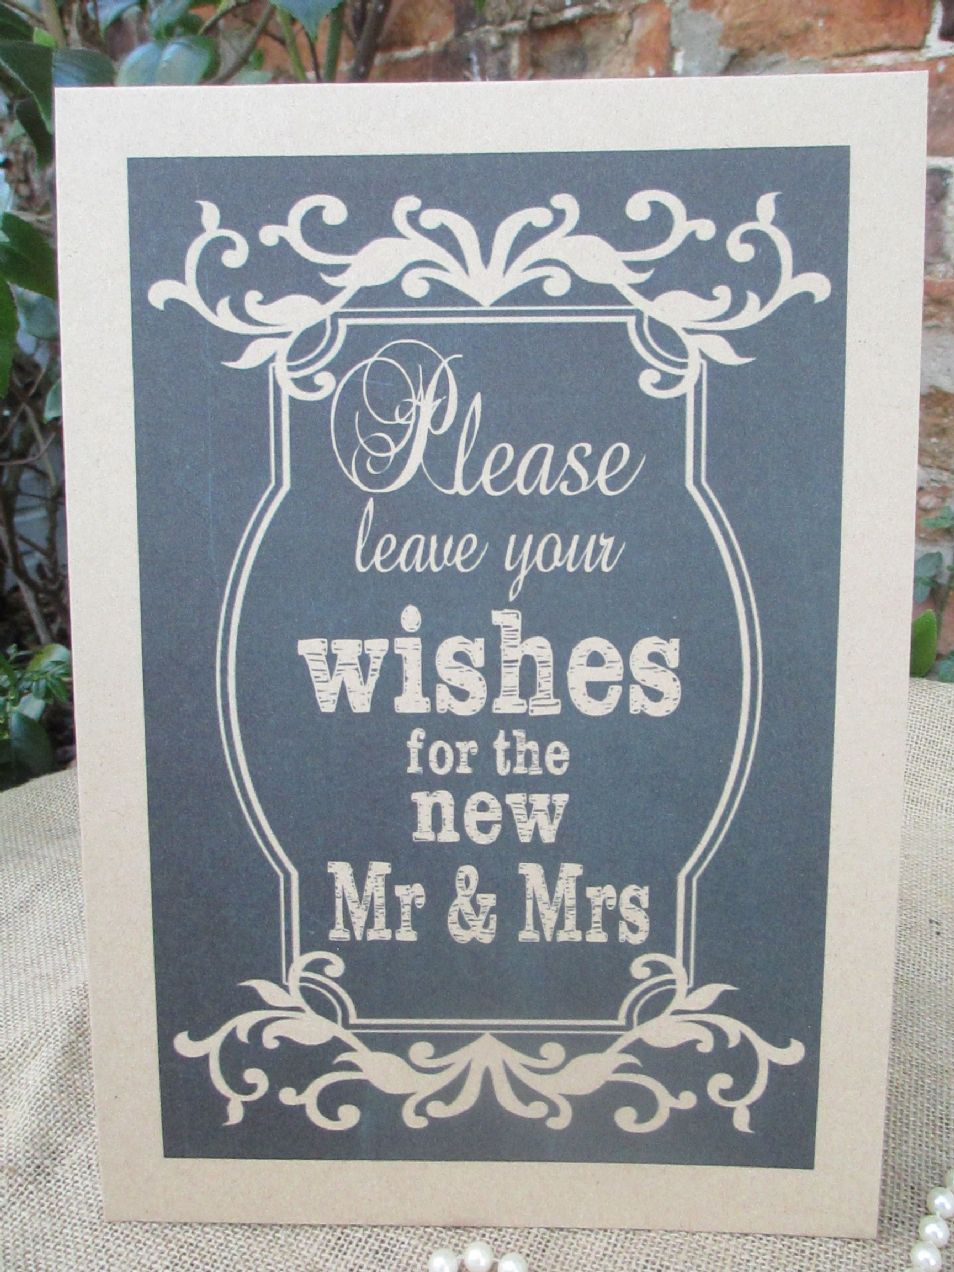 Wish Tree Wishes For The New Mr Amp Mrs A4 Size Poster